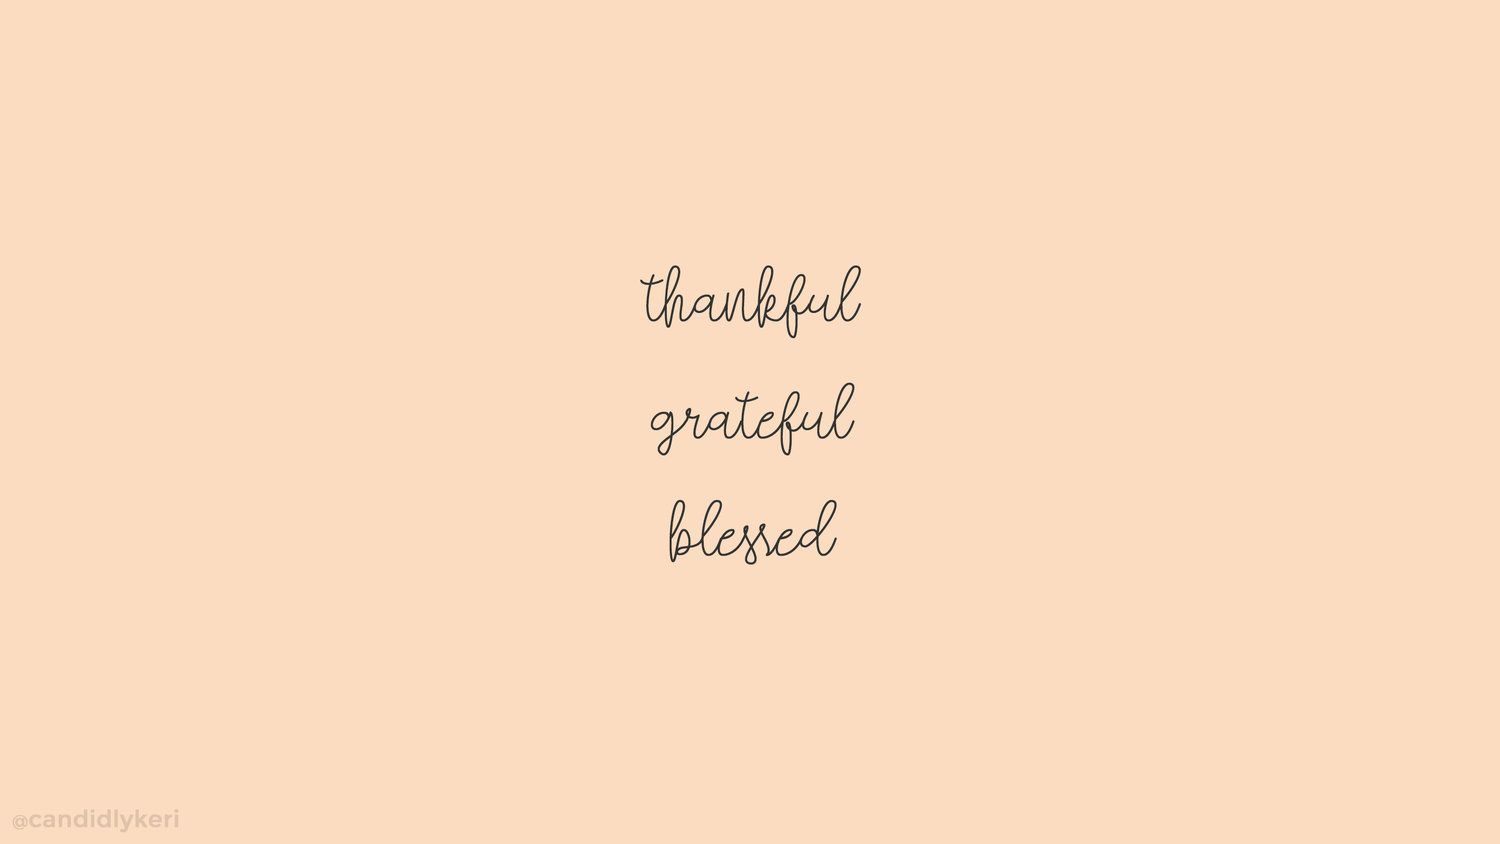 Thankful Grateful Blessed Desktop Laptop Wallpaper Laptop Wallpaper Quotes Desktop Wallpaper Macbook